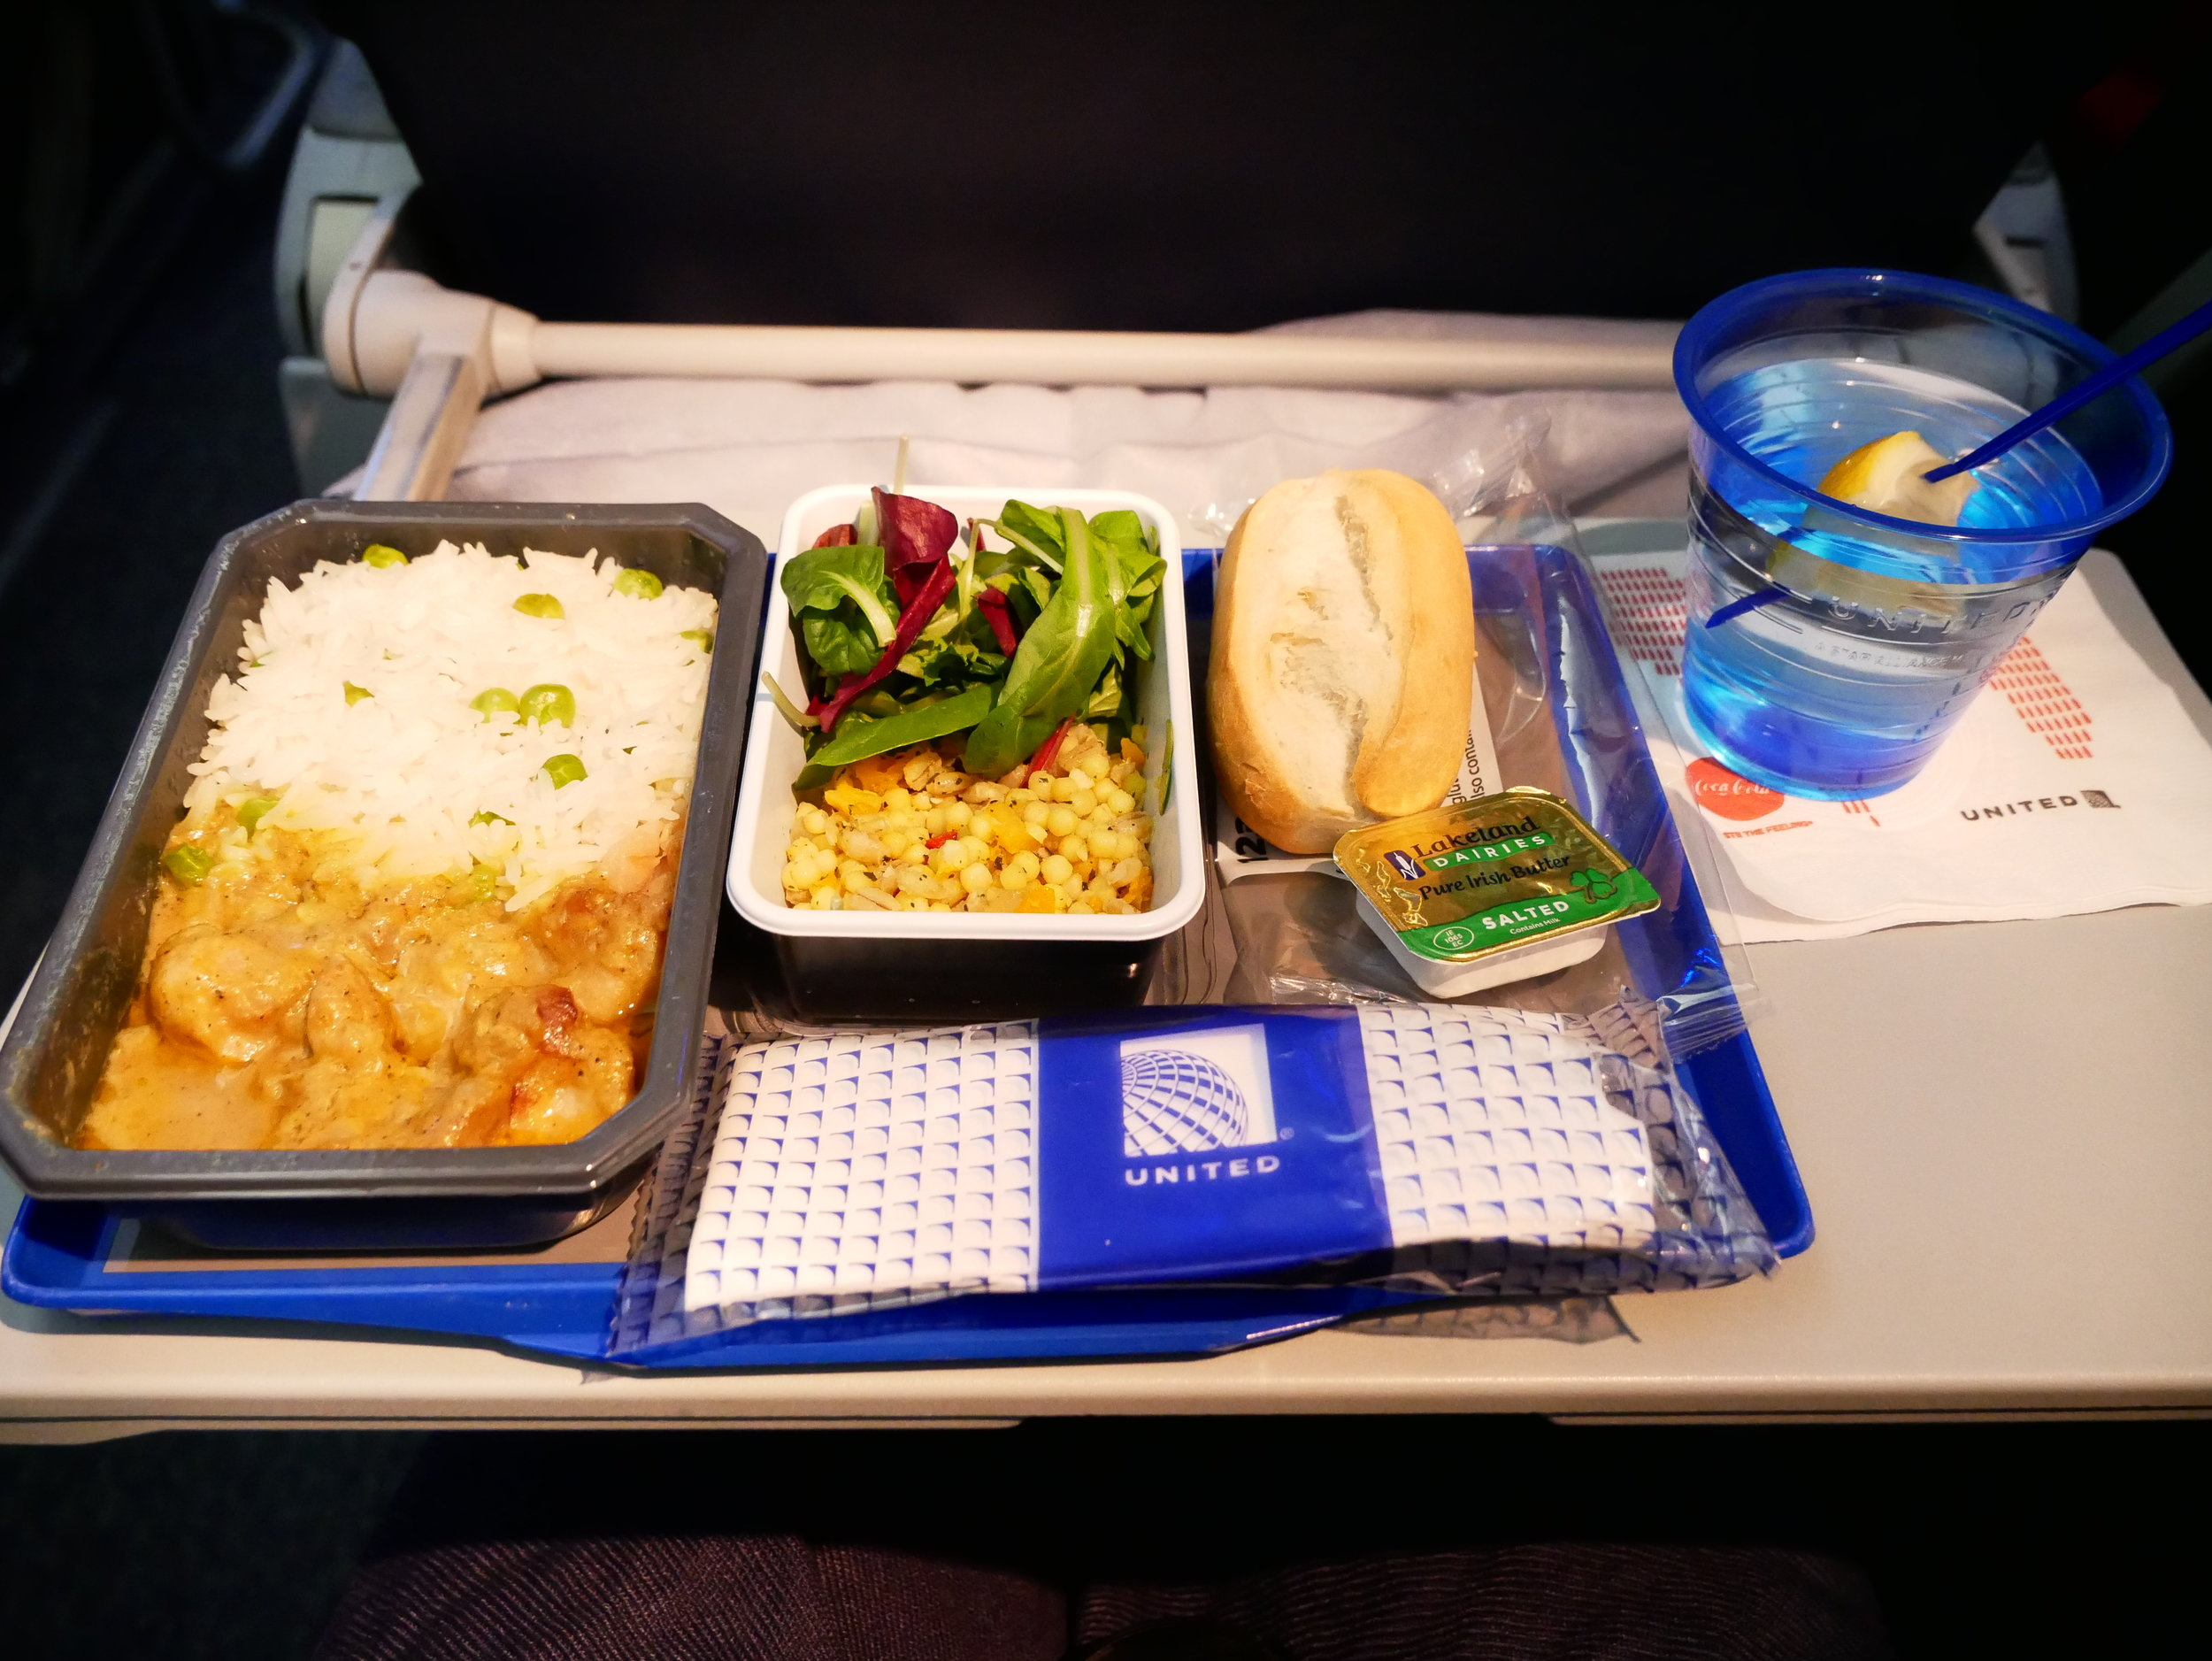 United Economy Chicken Korma